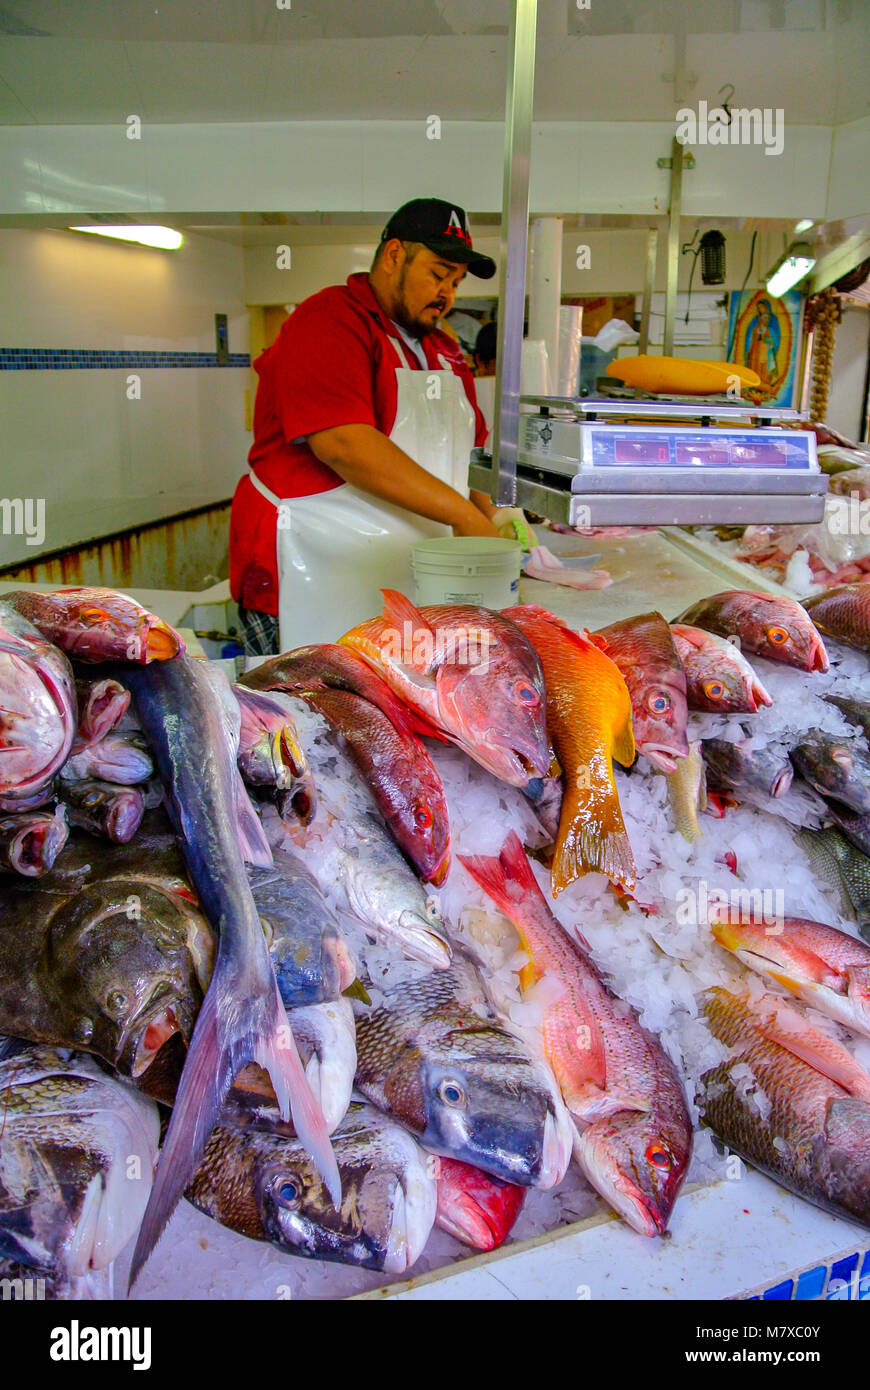 Mexican seller at Fish market in Puerto Vallarta, Jalisco, Mexico - Stock Image